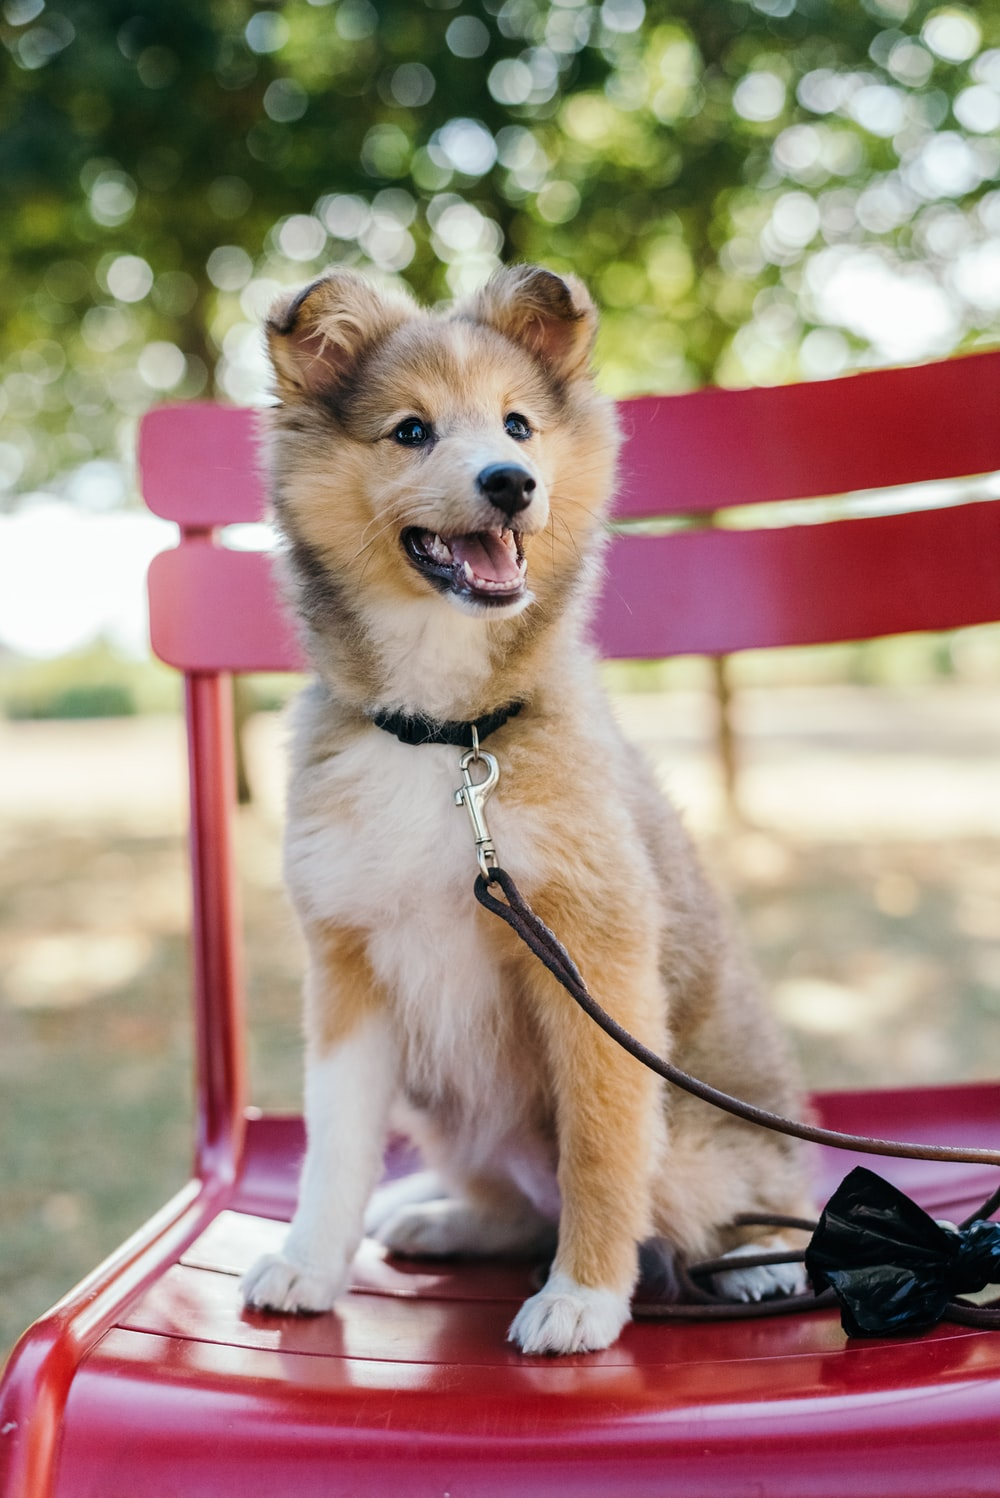 medium-coated tan and white puppy sitting on red metal bench at daytime